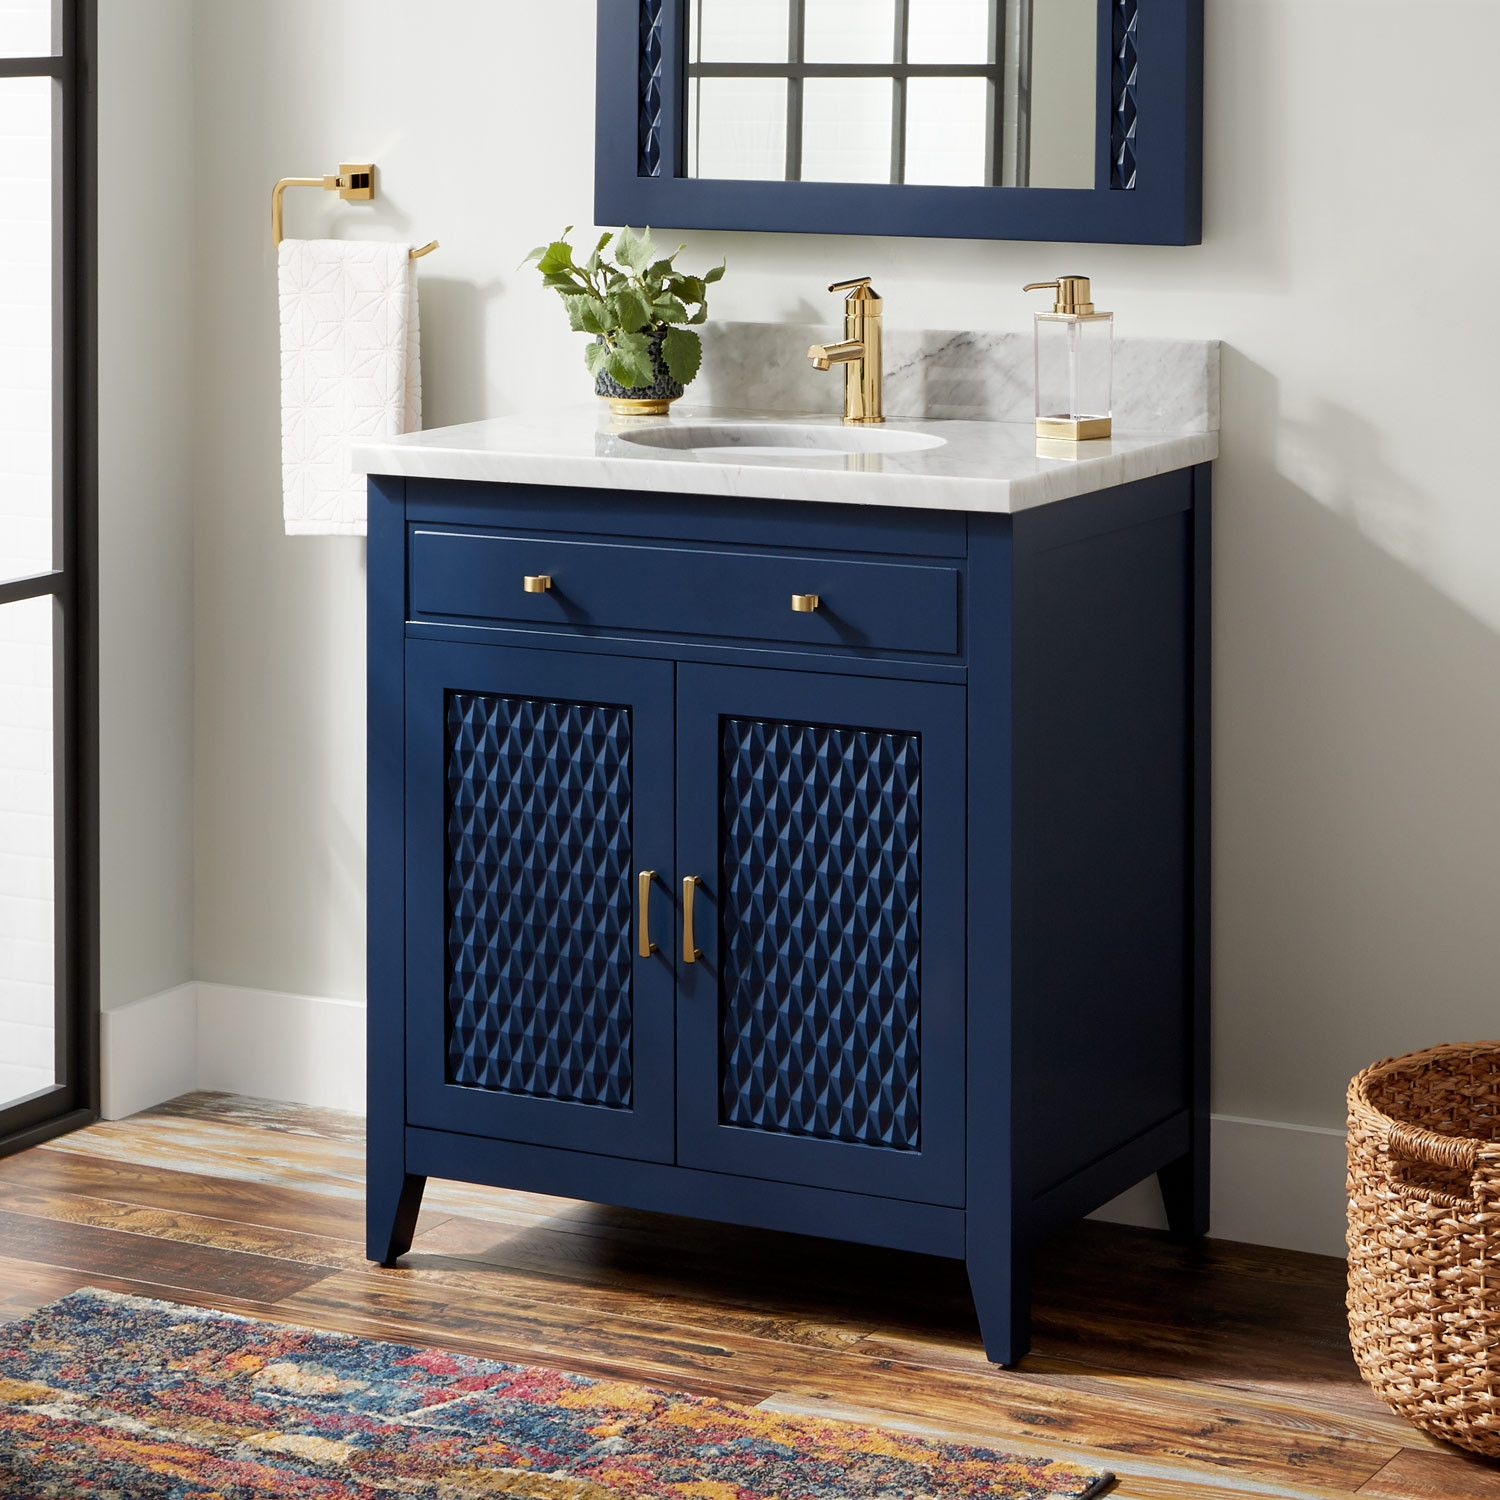 30 Thorton Mahogany Vanity For Undermount Sink Bright Navy Blue